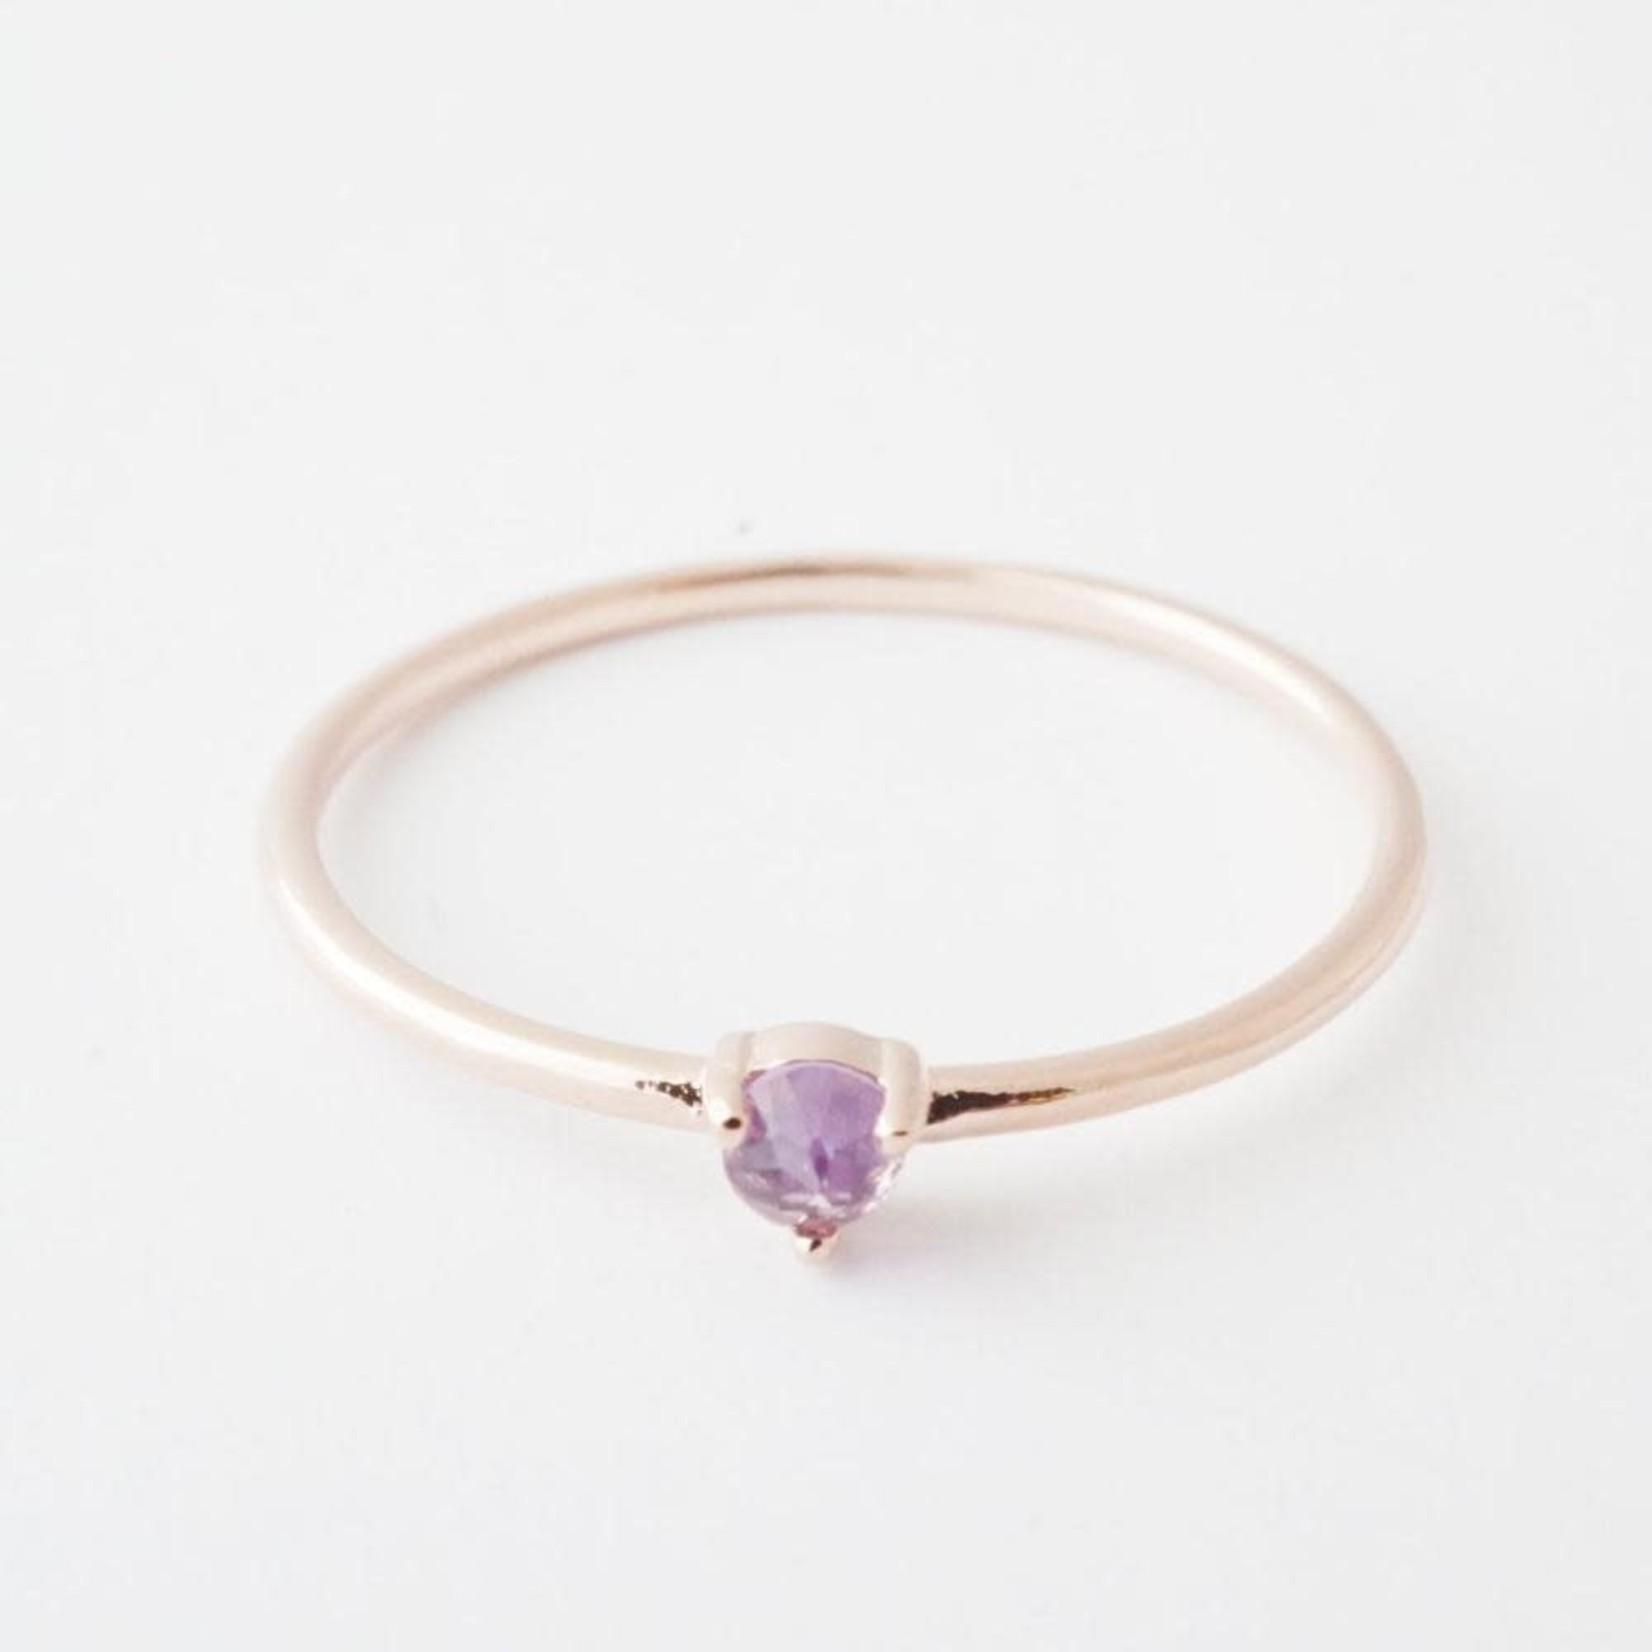 Honeycat Jewelry Honeycat Solitaire Ring AMETHYST Rose Gold